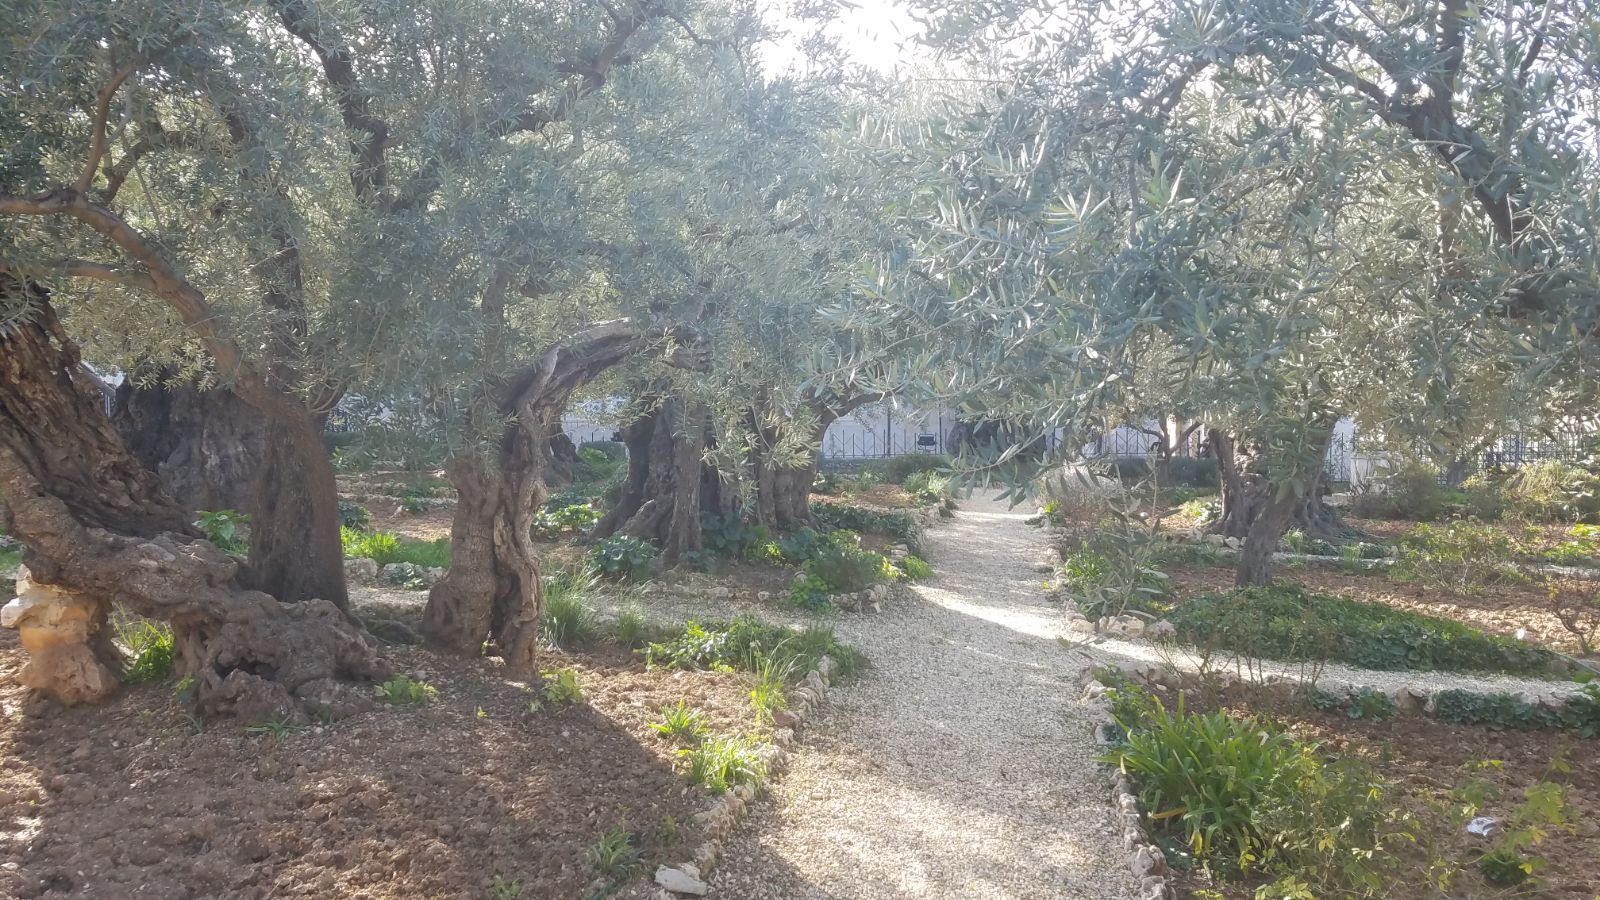 Olive trees in the Garden of Gethsemane-